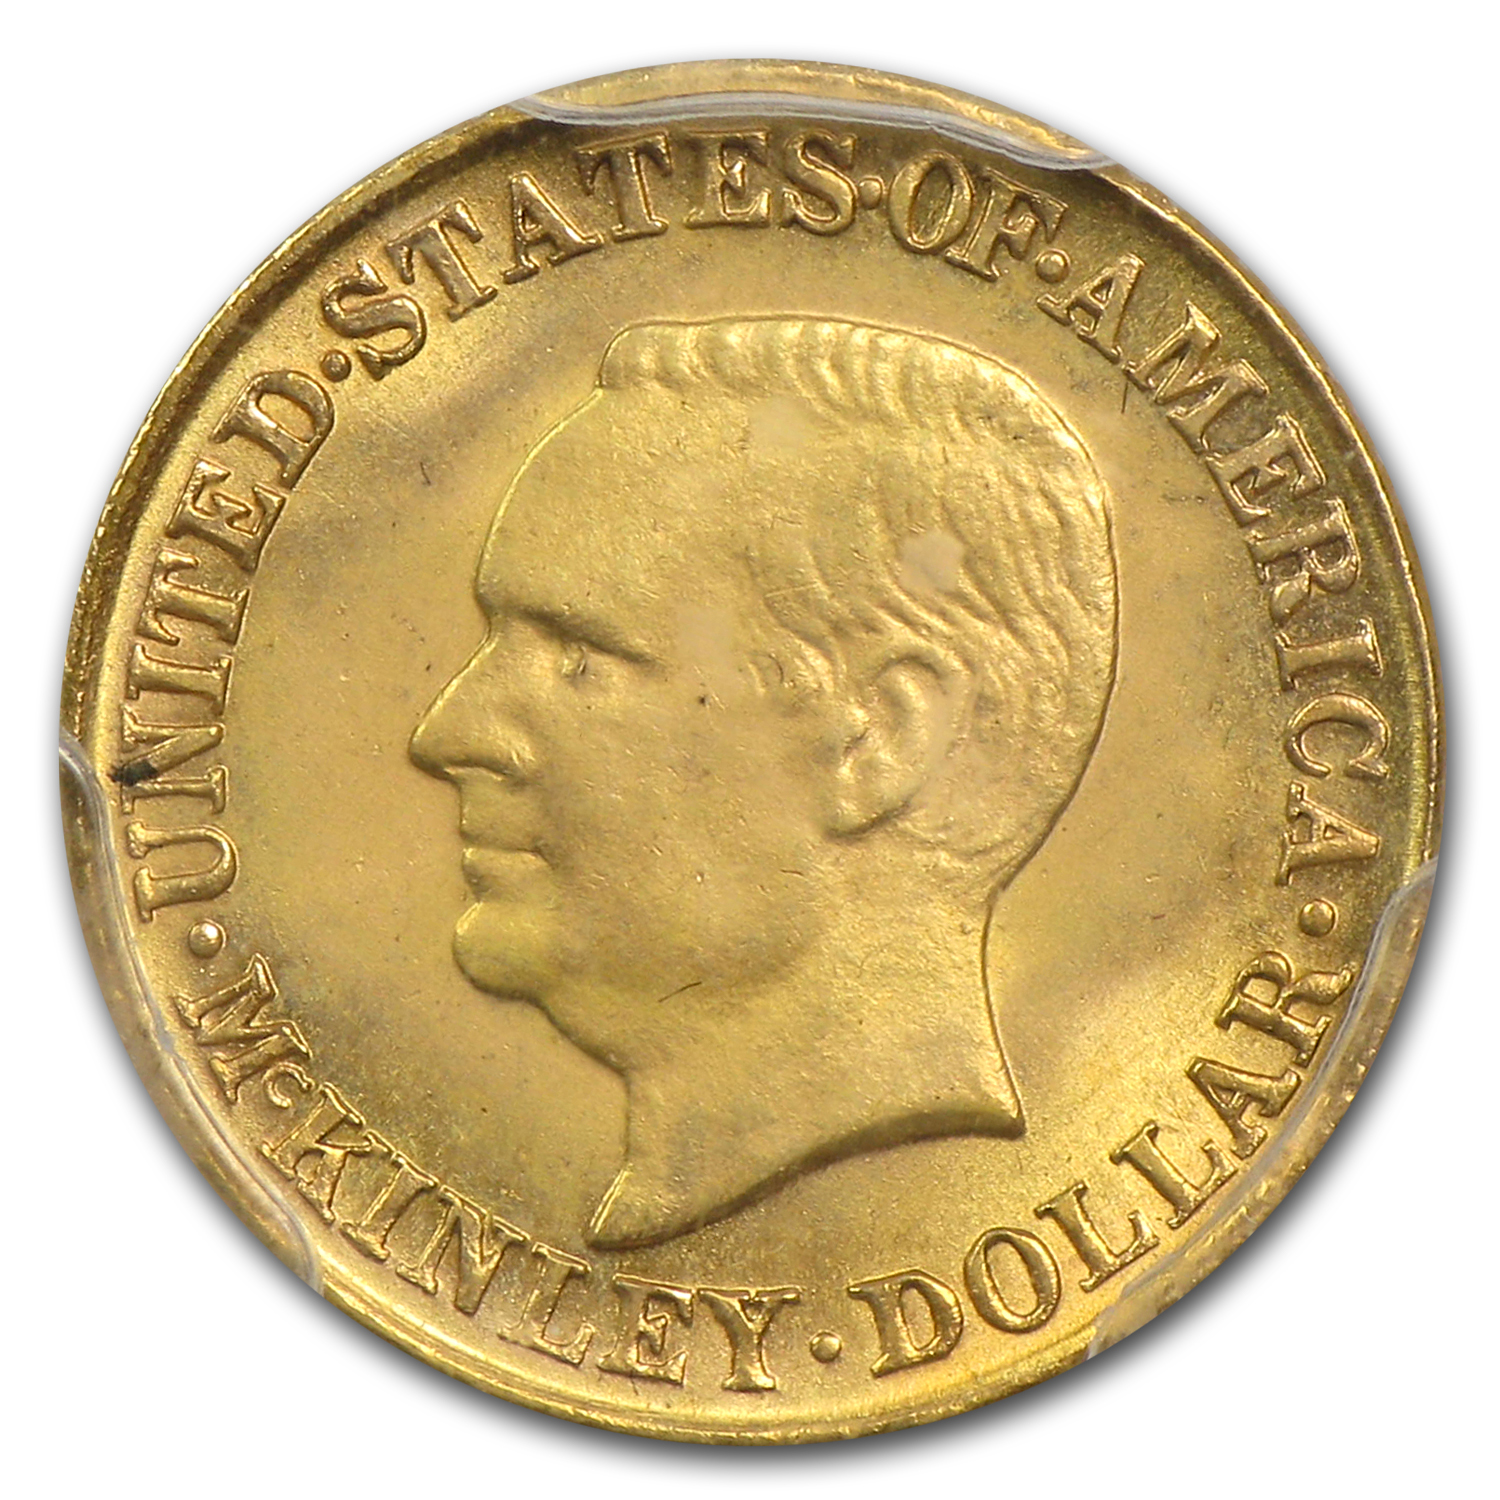 1917 Gold $1.00 McKinley MS-64 PCGS